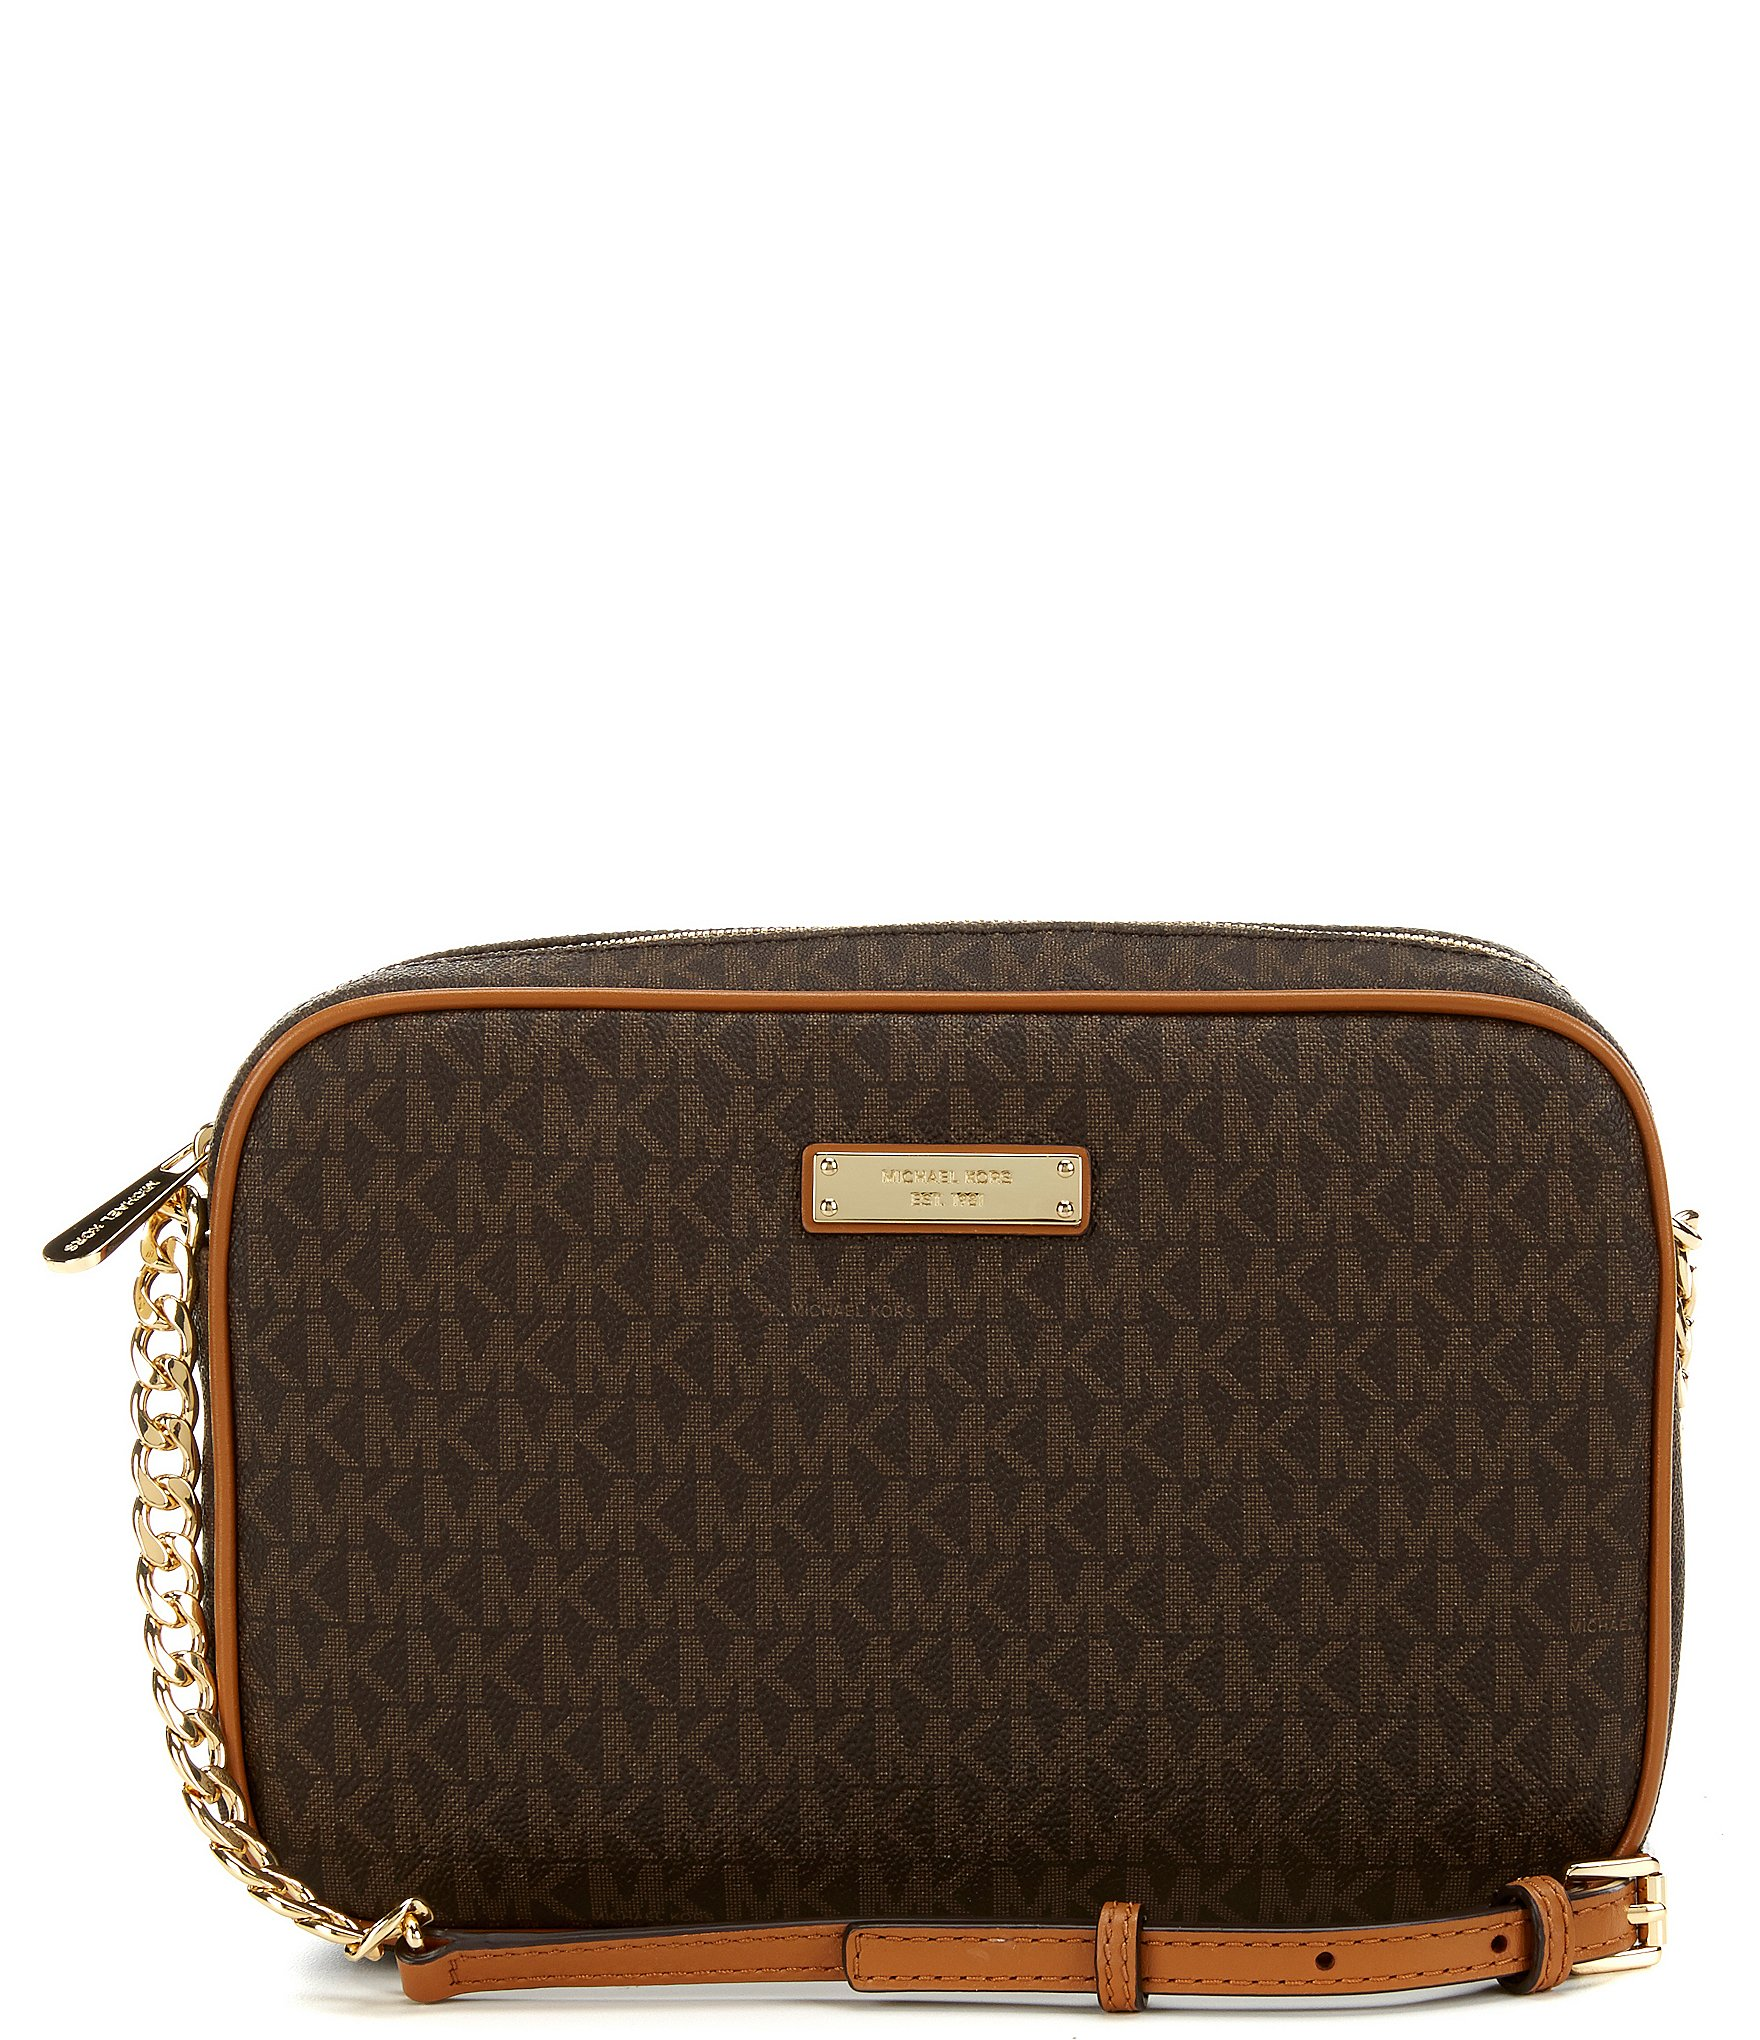 Michael Kors Jet Set Signature